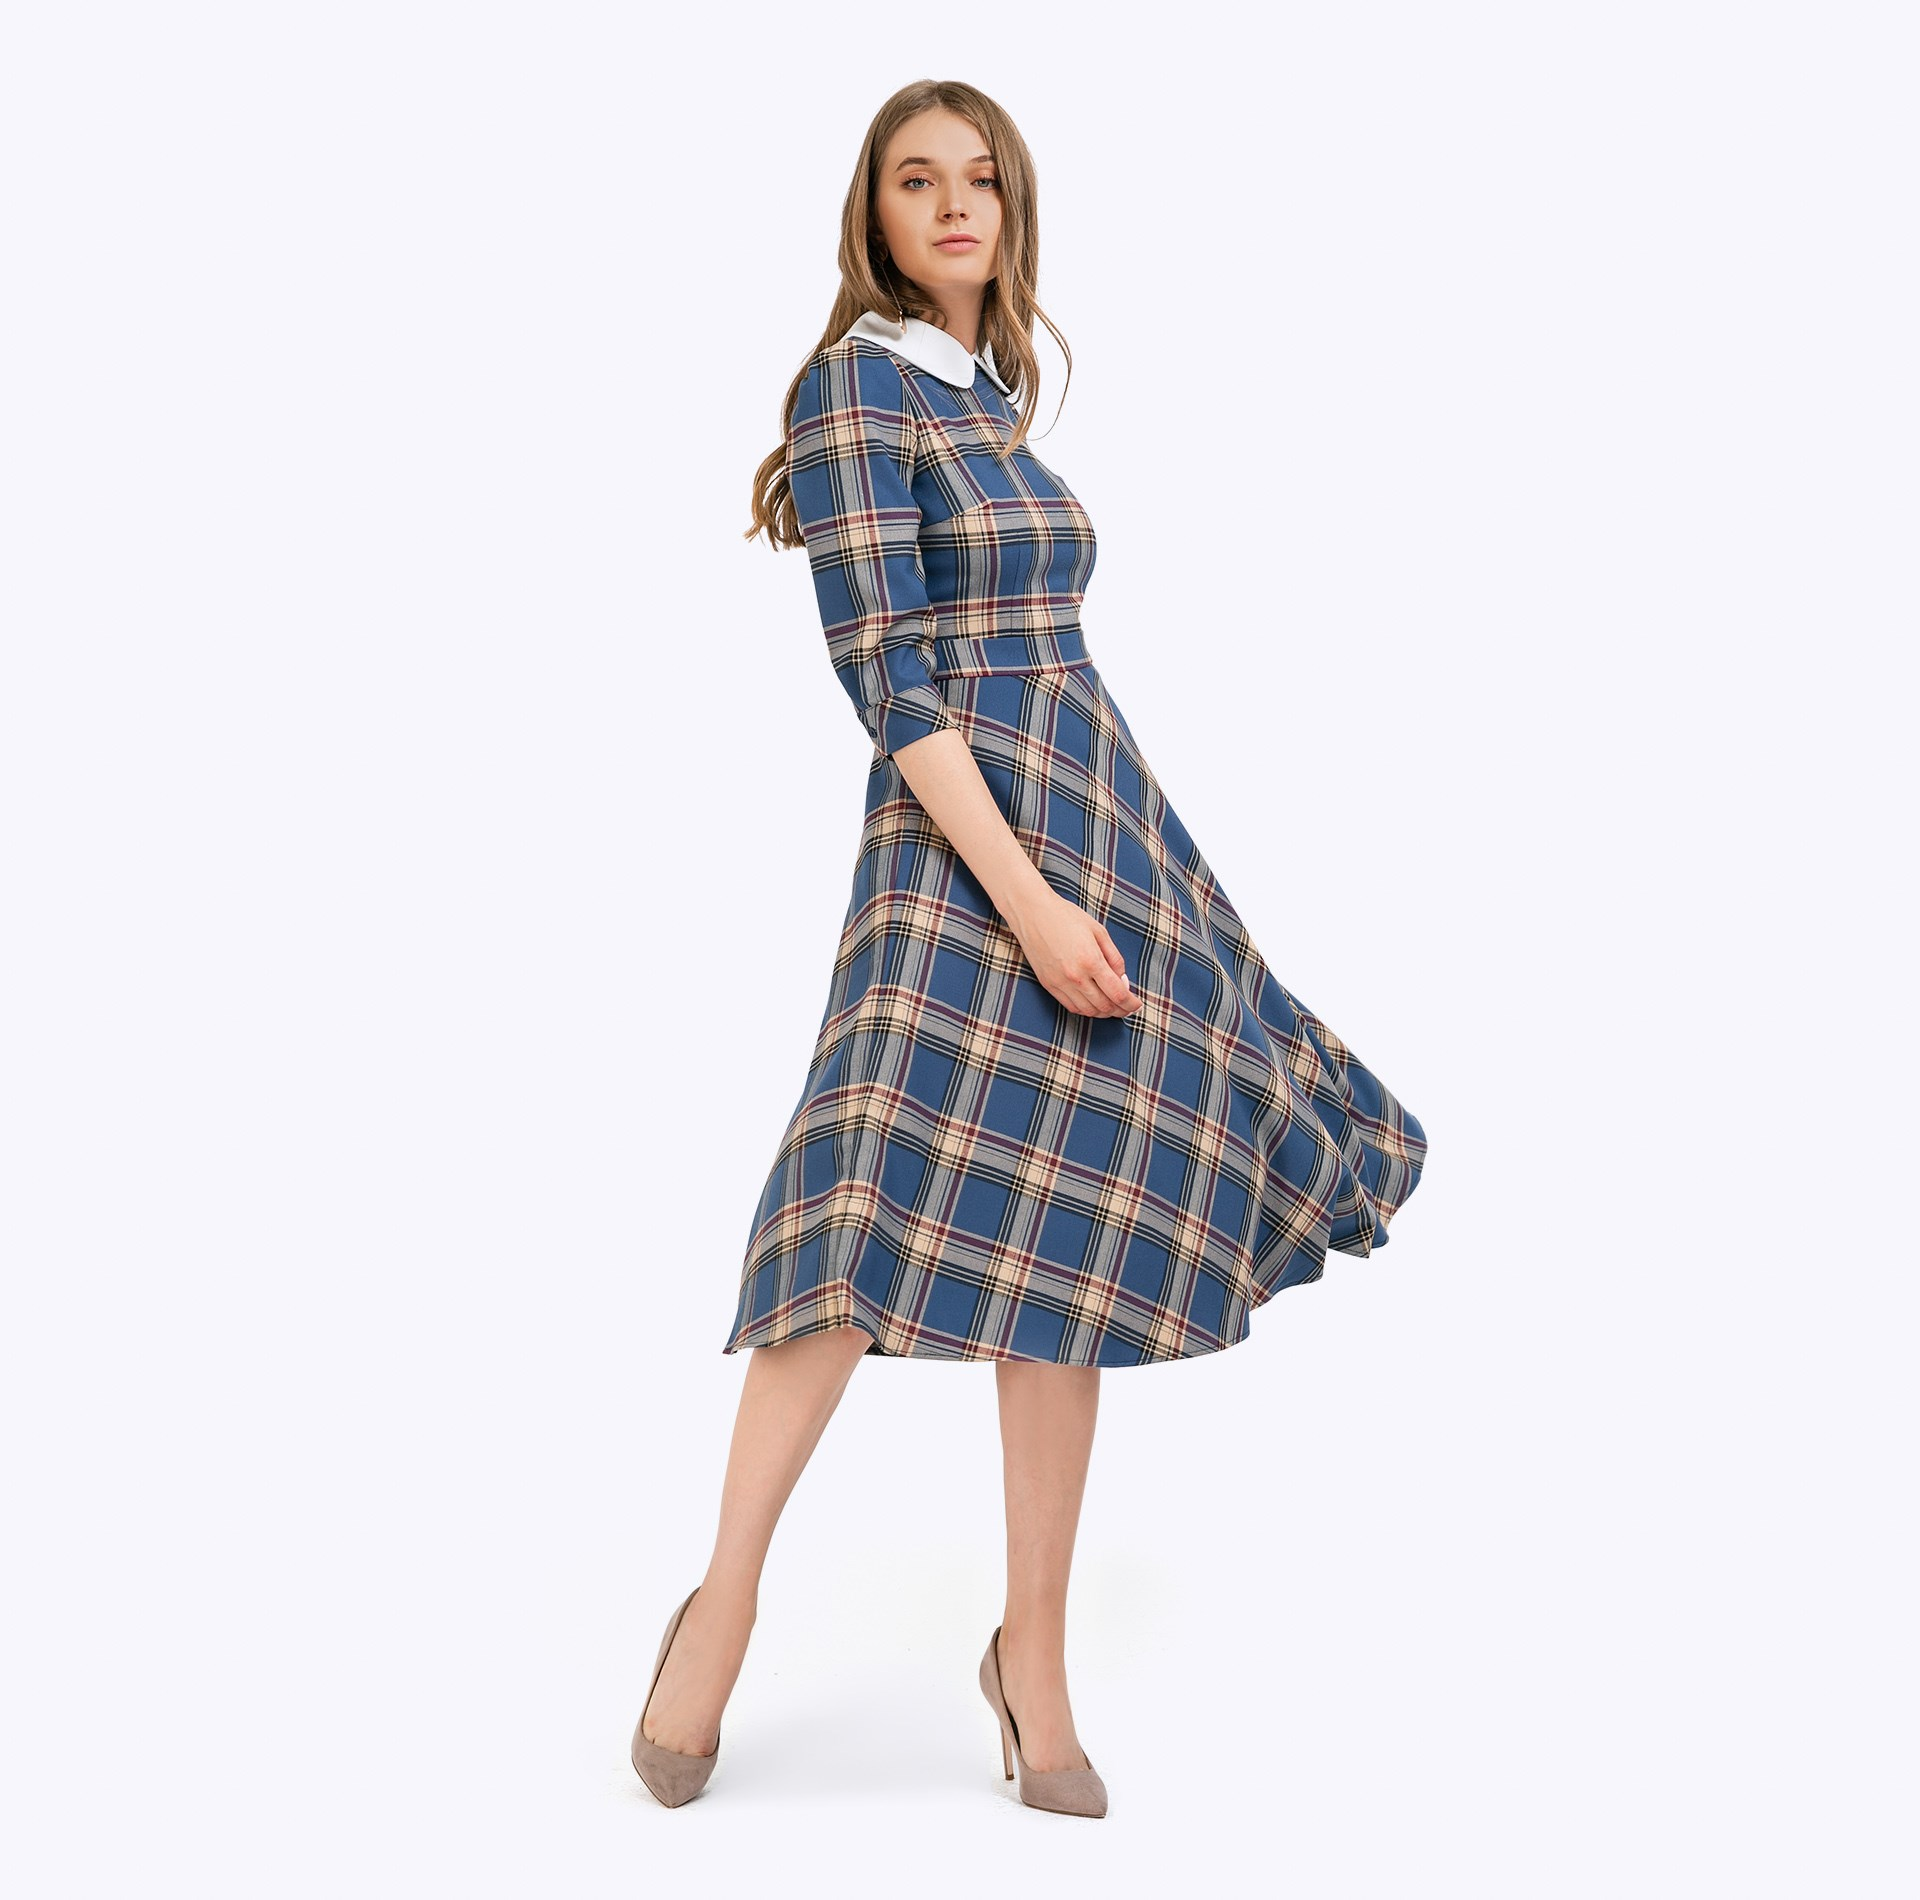 Slim dress plaid tartan plaid dress